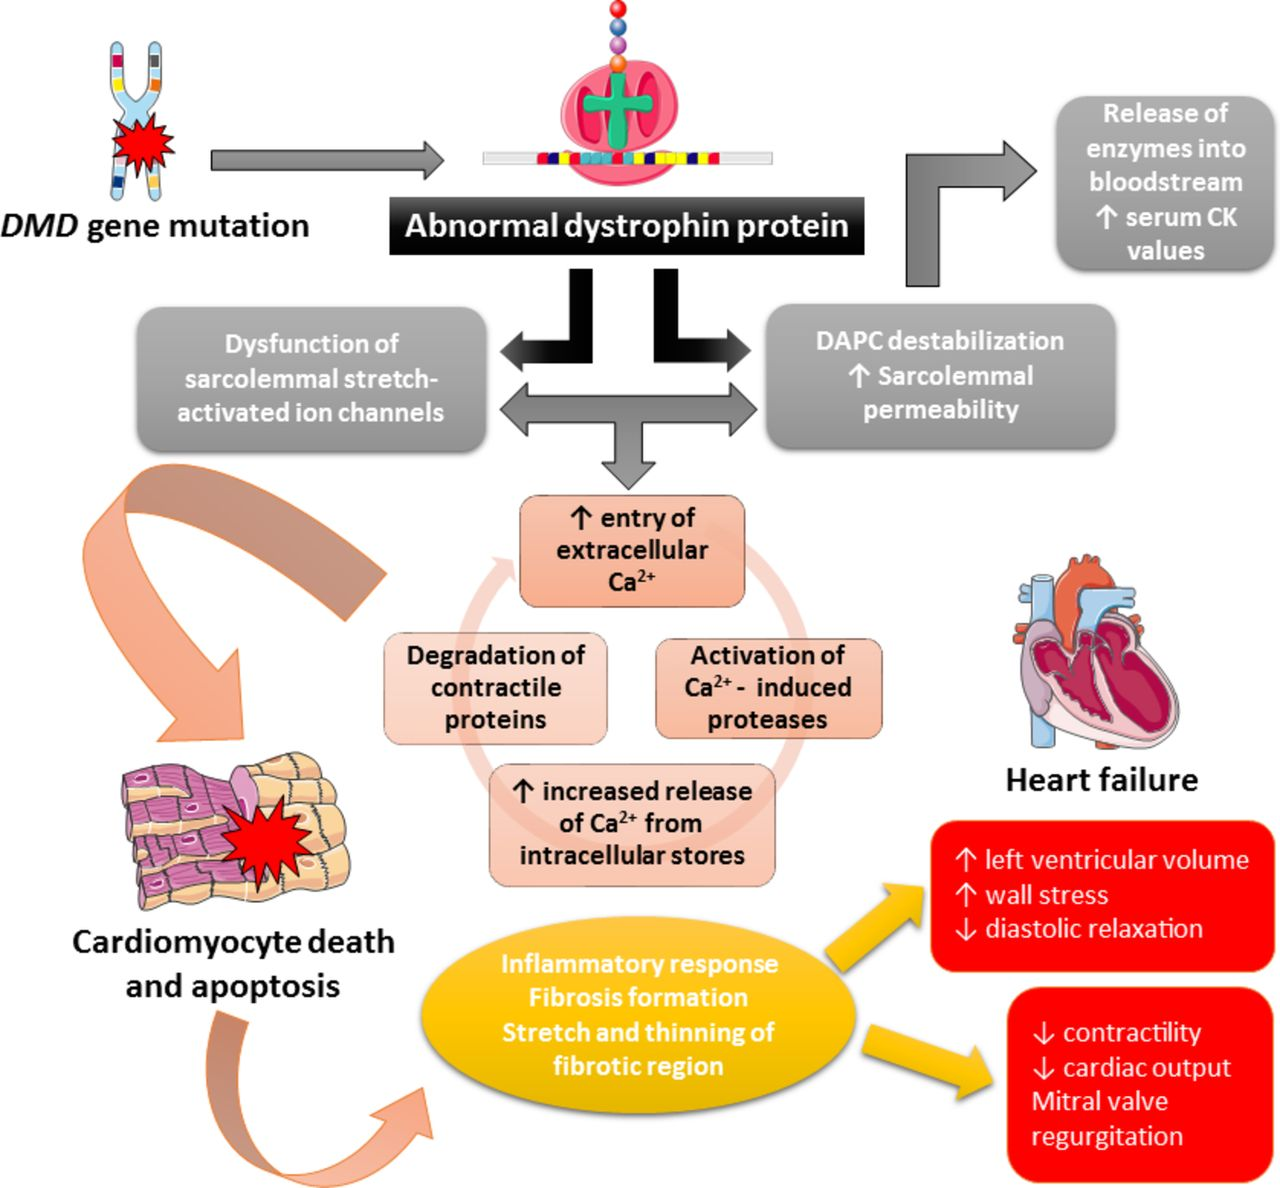 Duchenne Diagnosis Age A Current Approach To Heart Failure In Duchenne Muscular